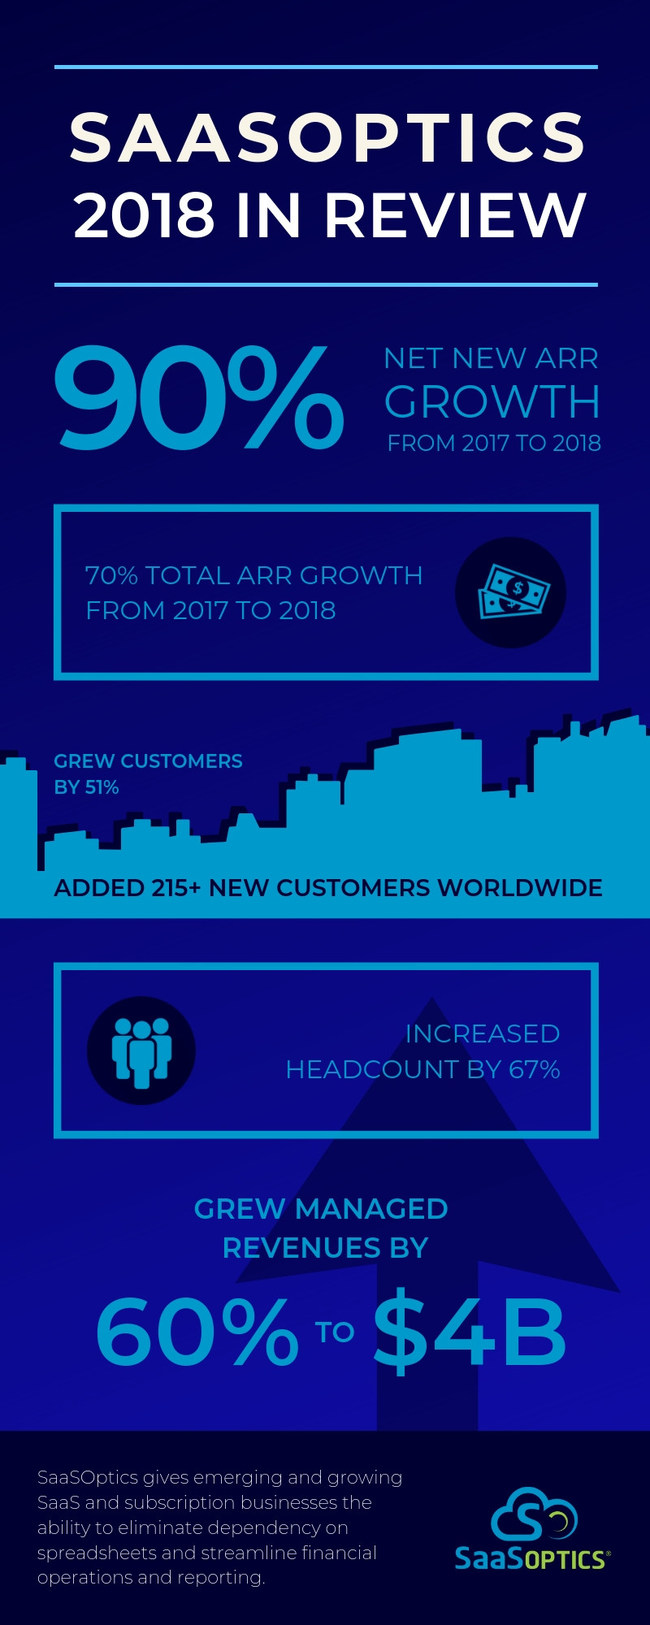 See how SaaSOptics grew in 2018.